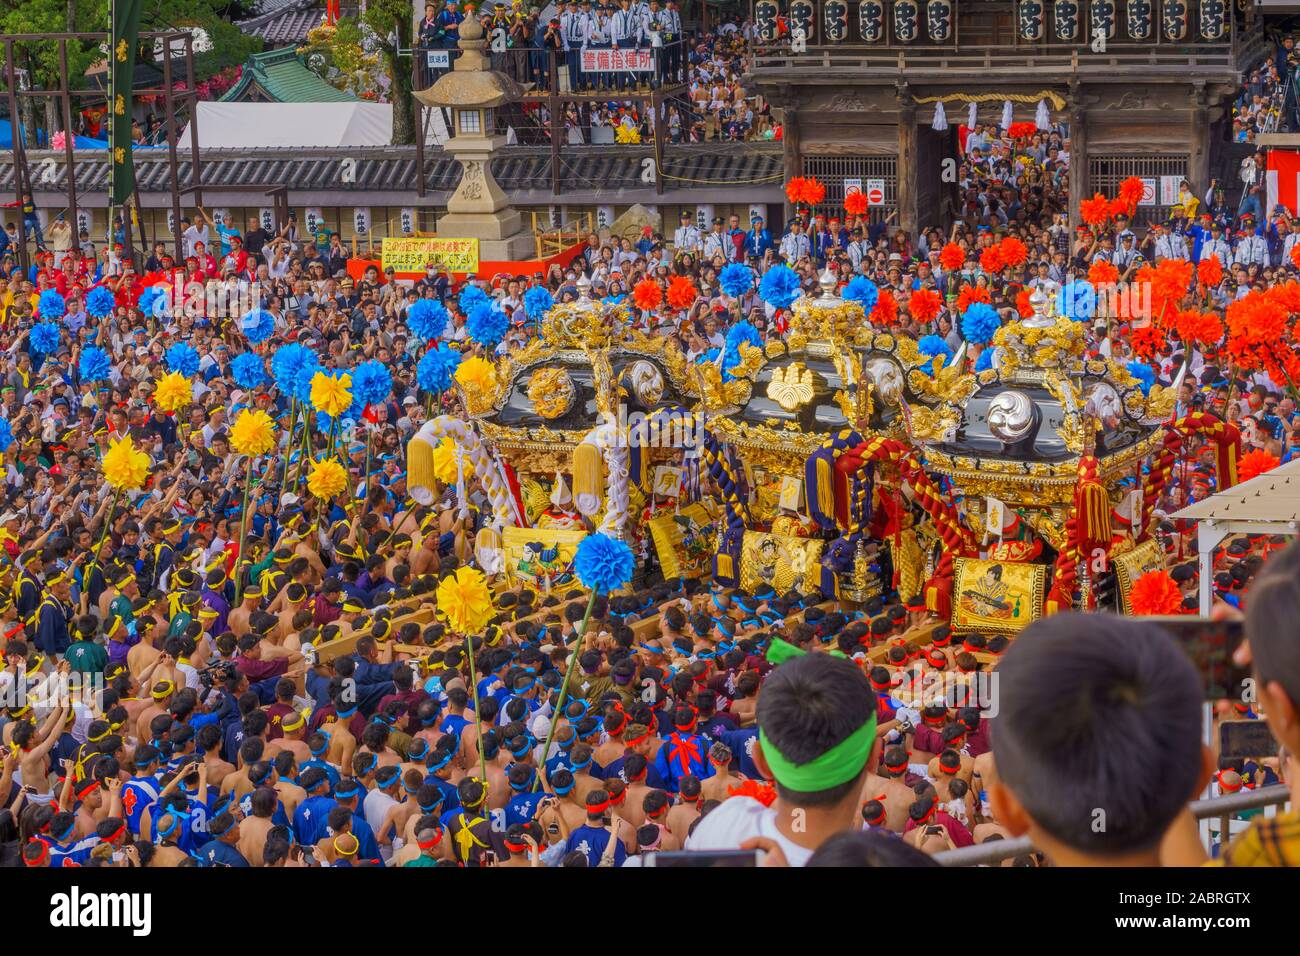 Himeji, Japan - October 14, 2019: Portable shrine carried by men in traditional dressing, and crowd in front of the Matsubara Hachiman Shrine. Part of Stock Photo